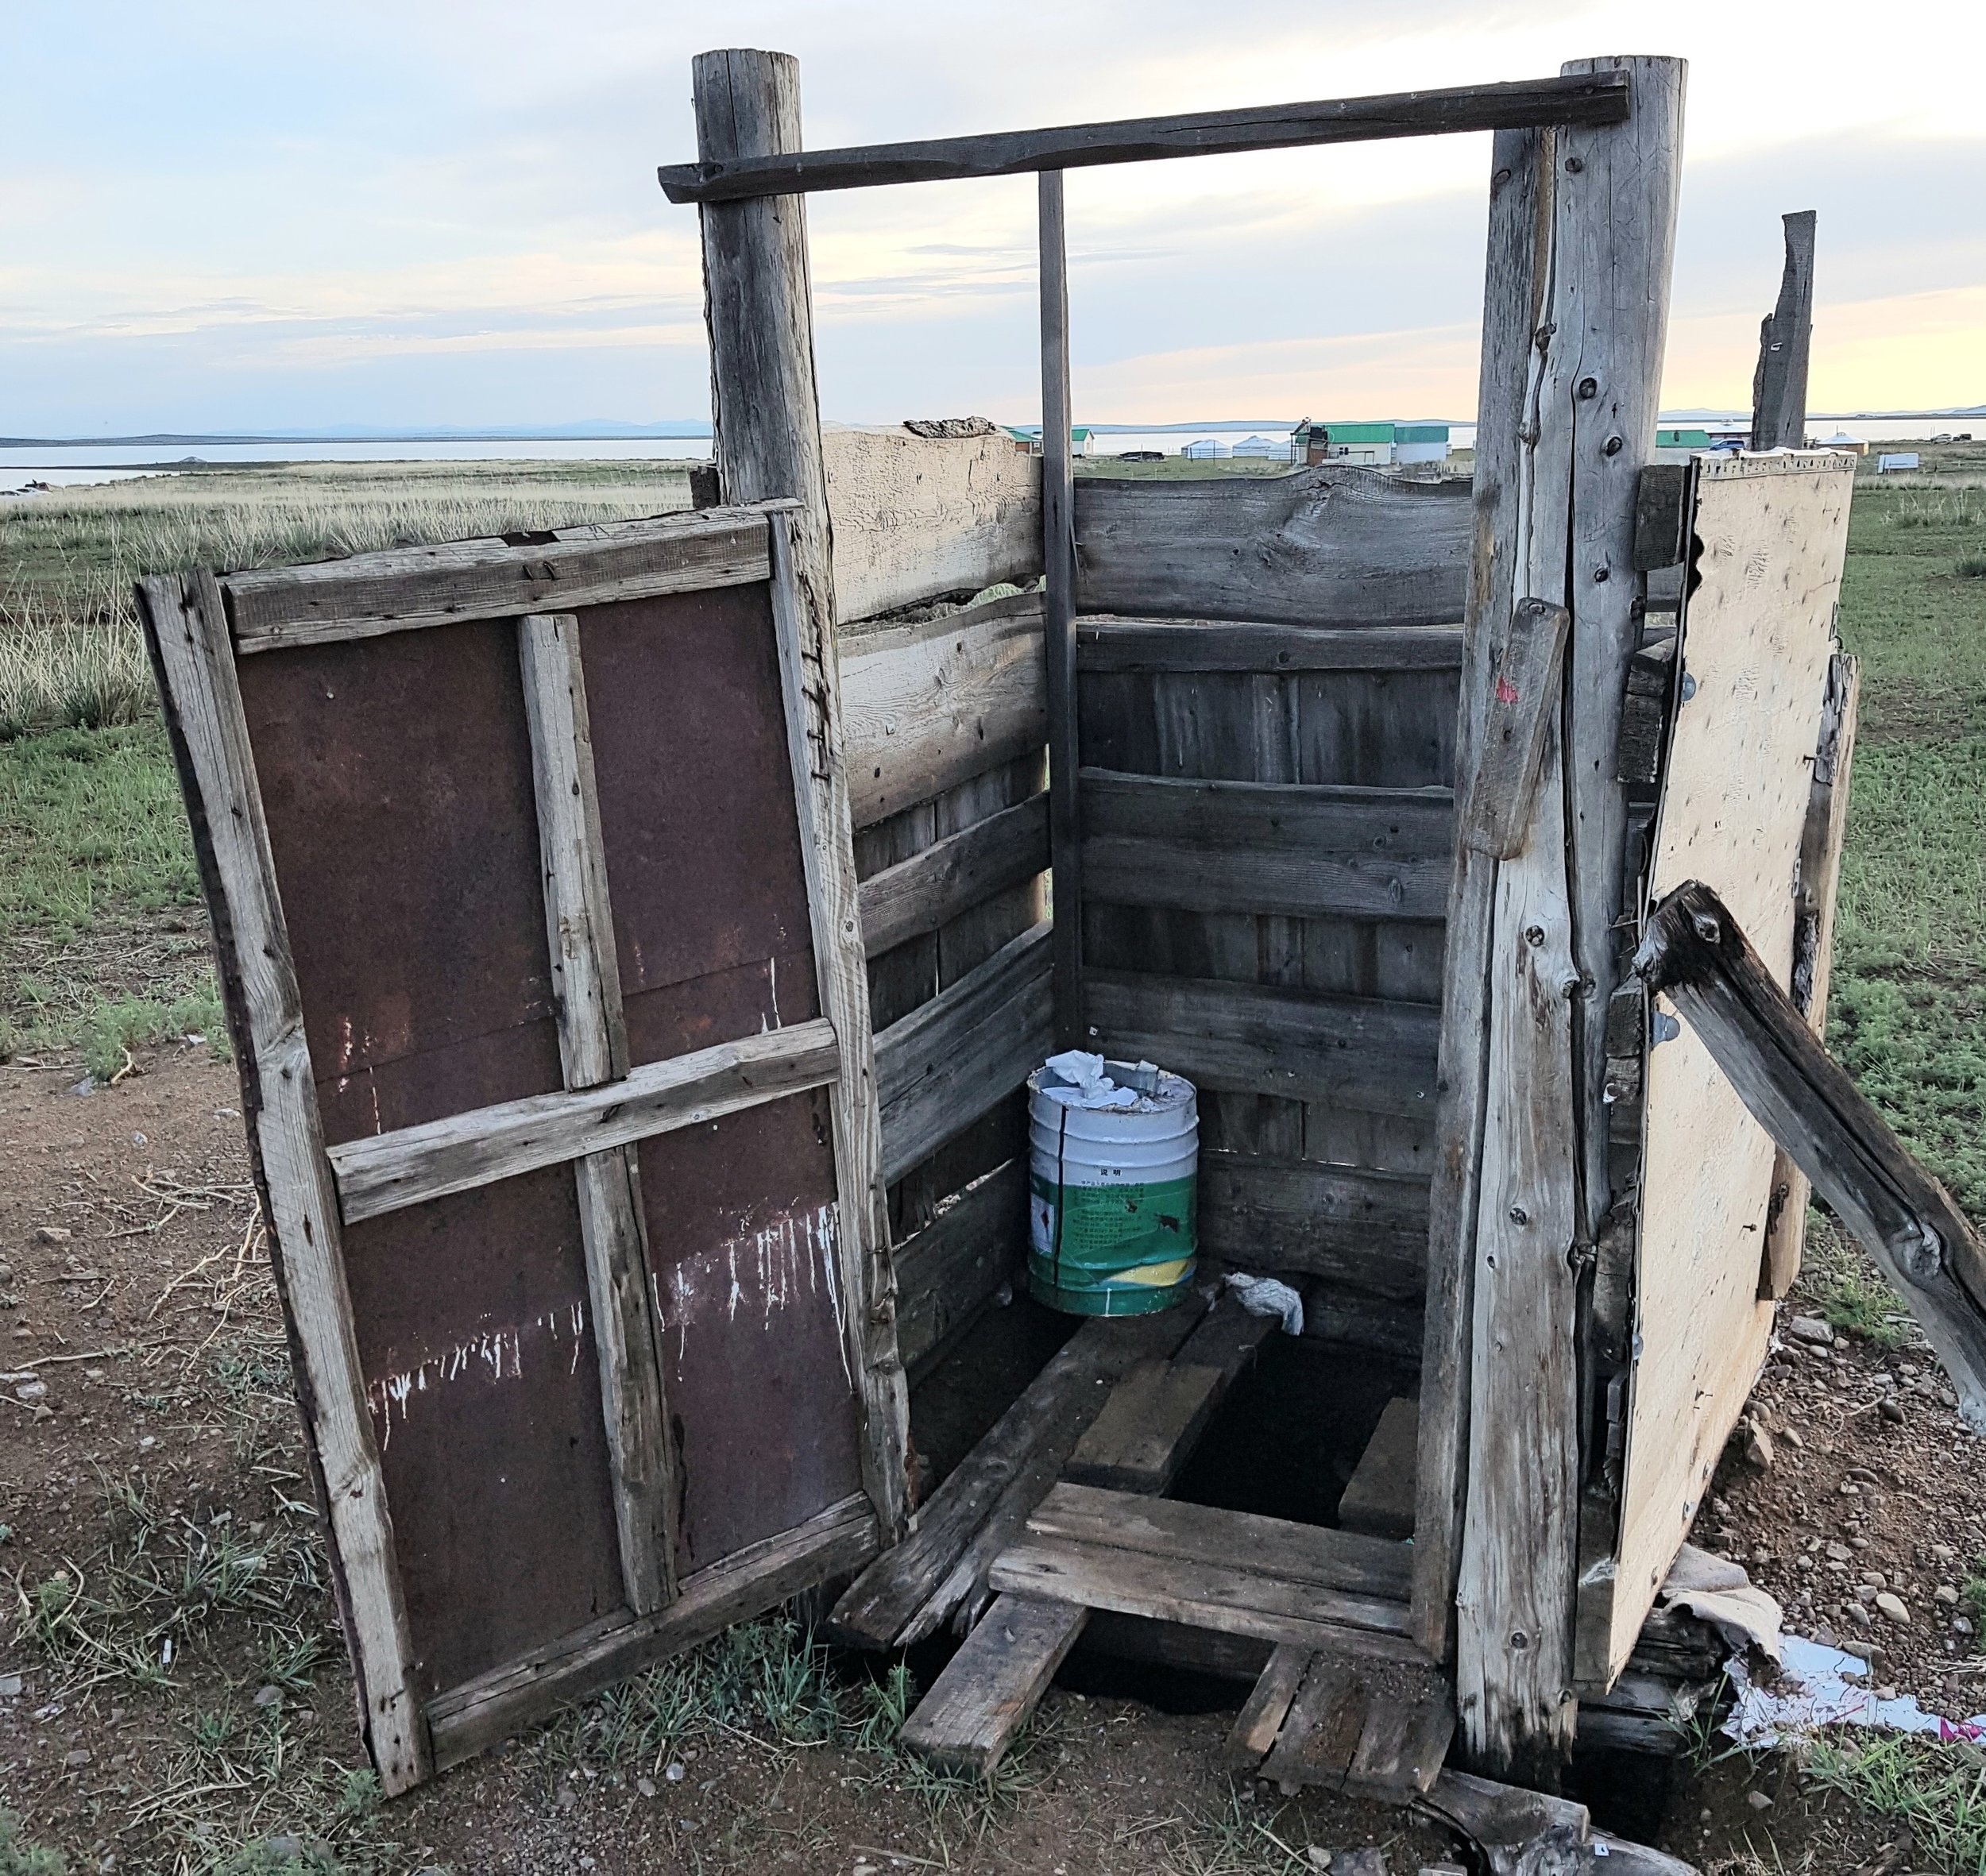 A pit latrine you did NOT want to use...